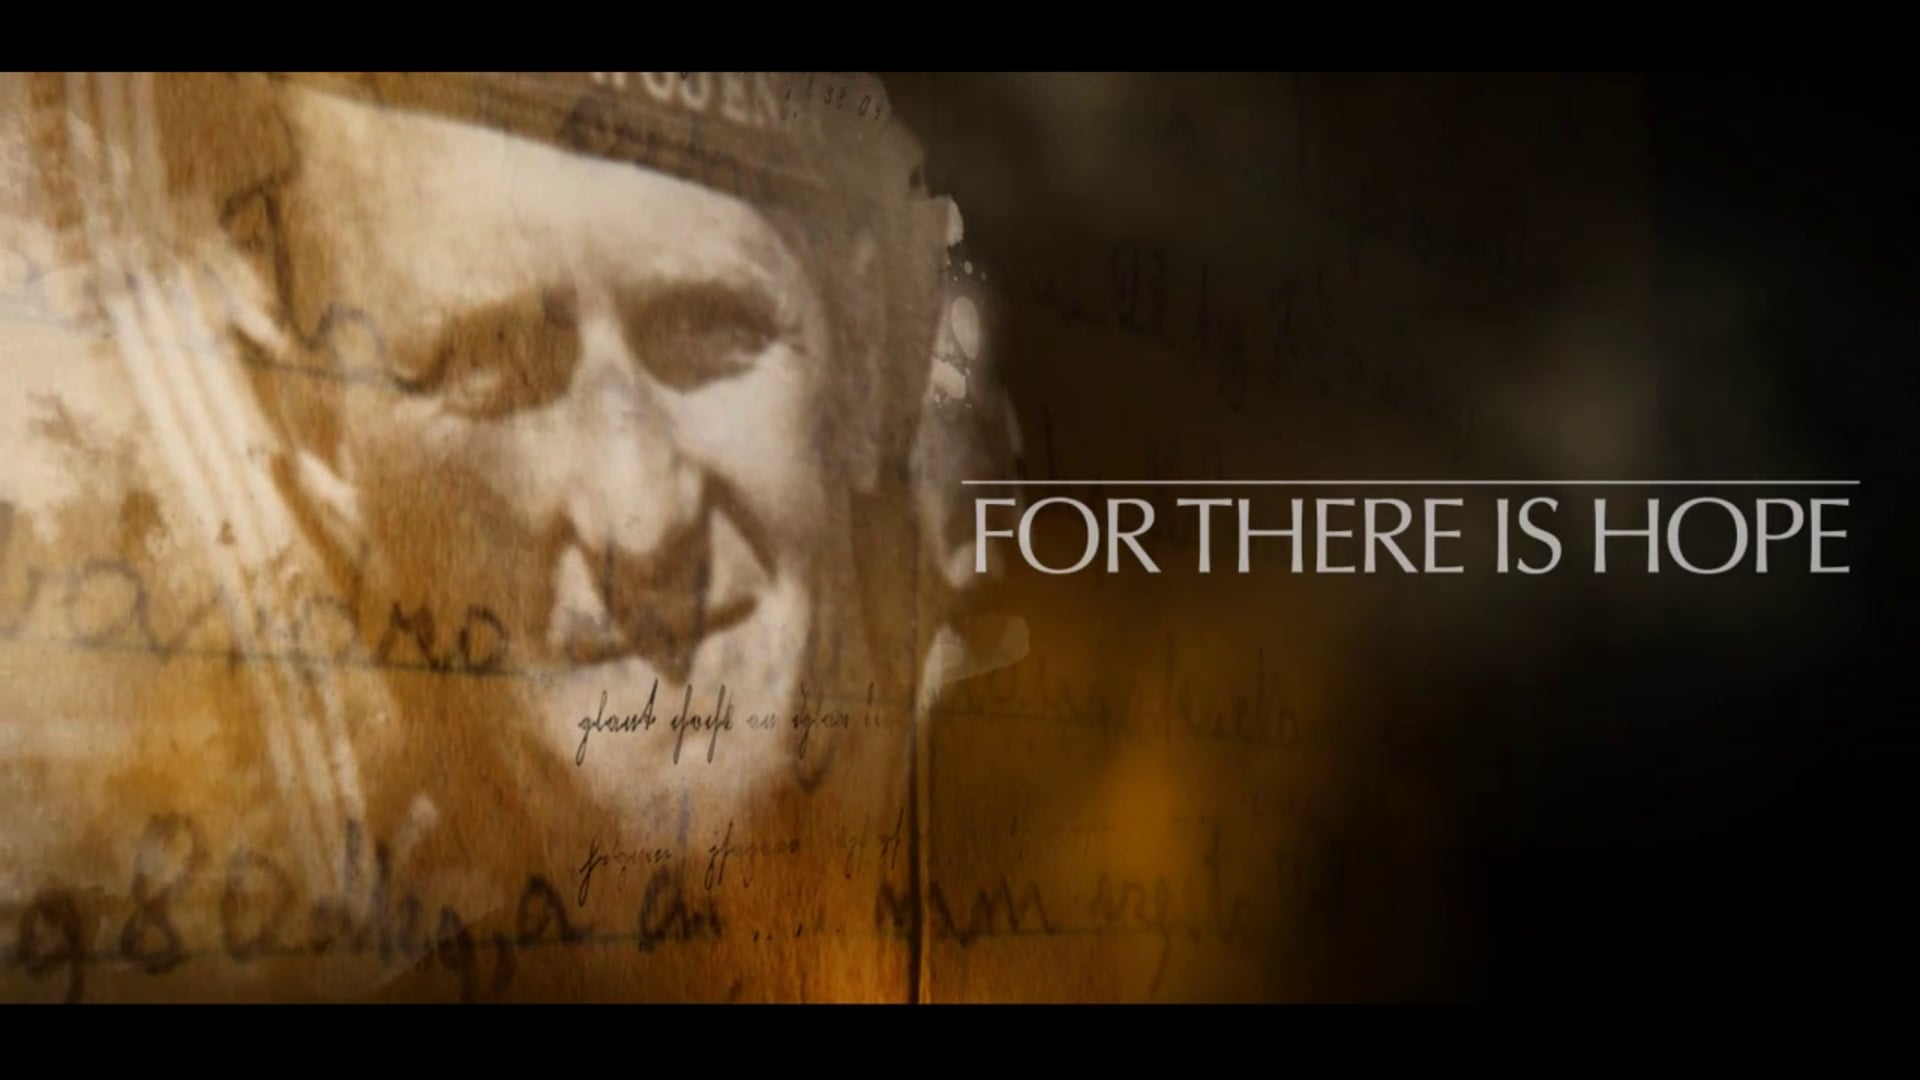 For there is hope. Jan Stepek story | Oahu Films